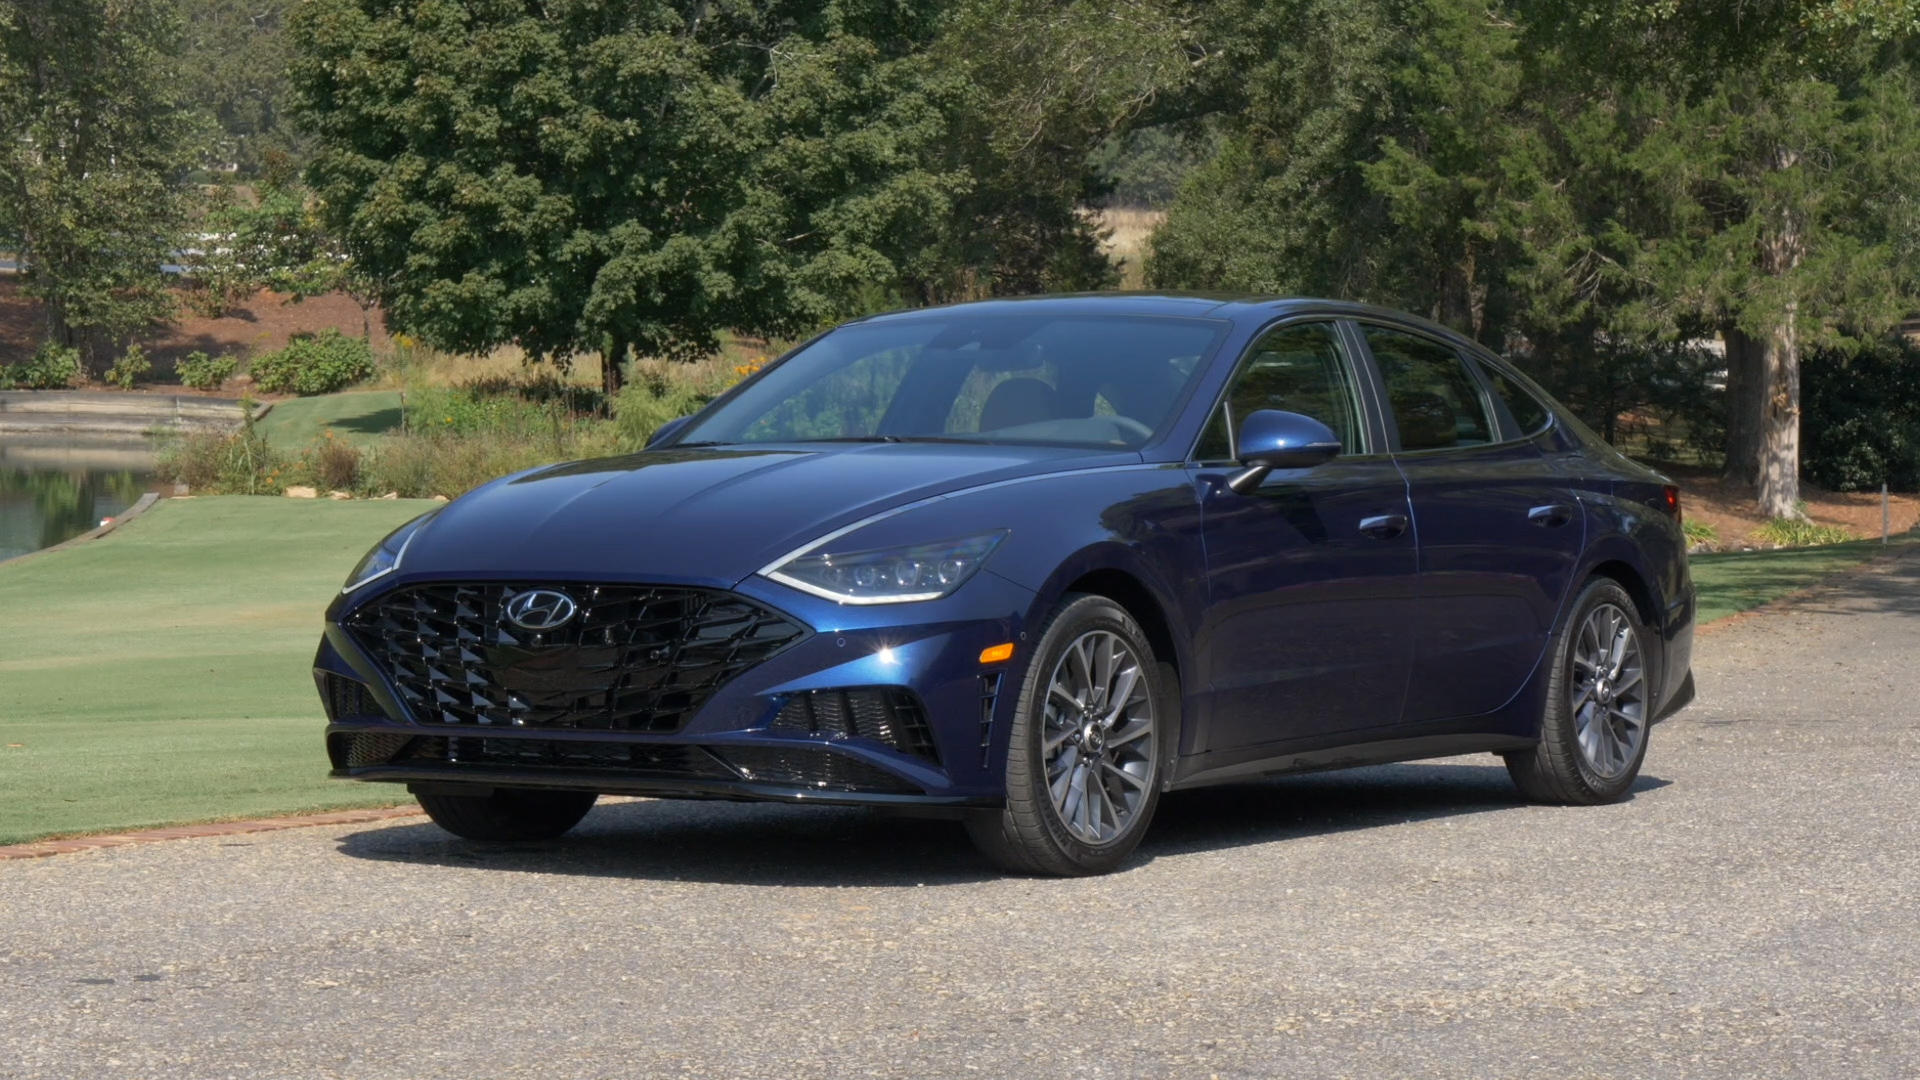 Video: Five things you need to know about the 2020 Hyundai Sonata